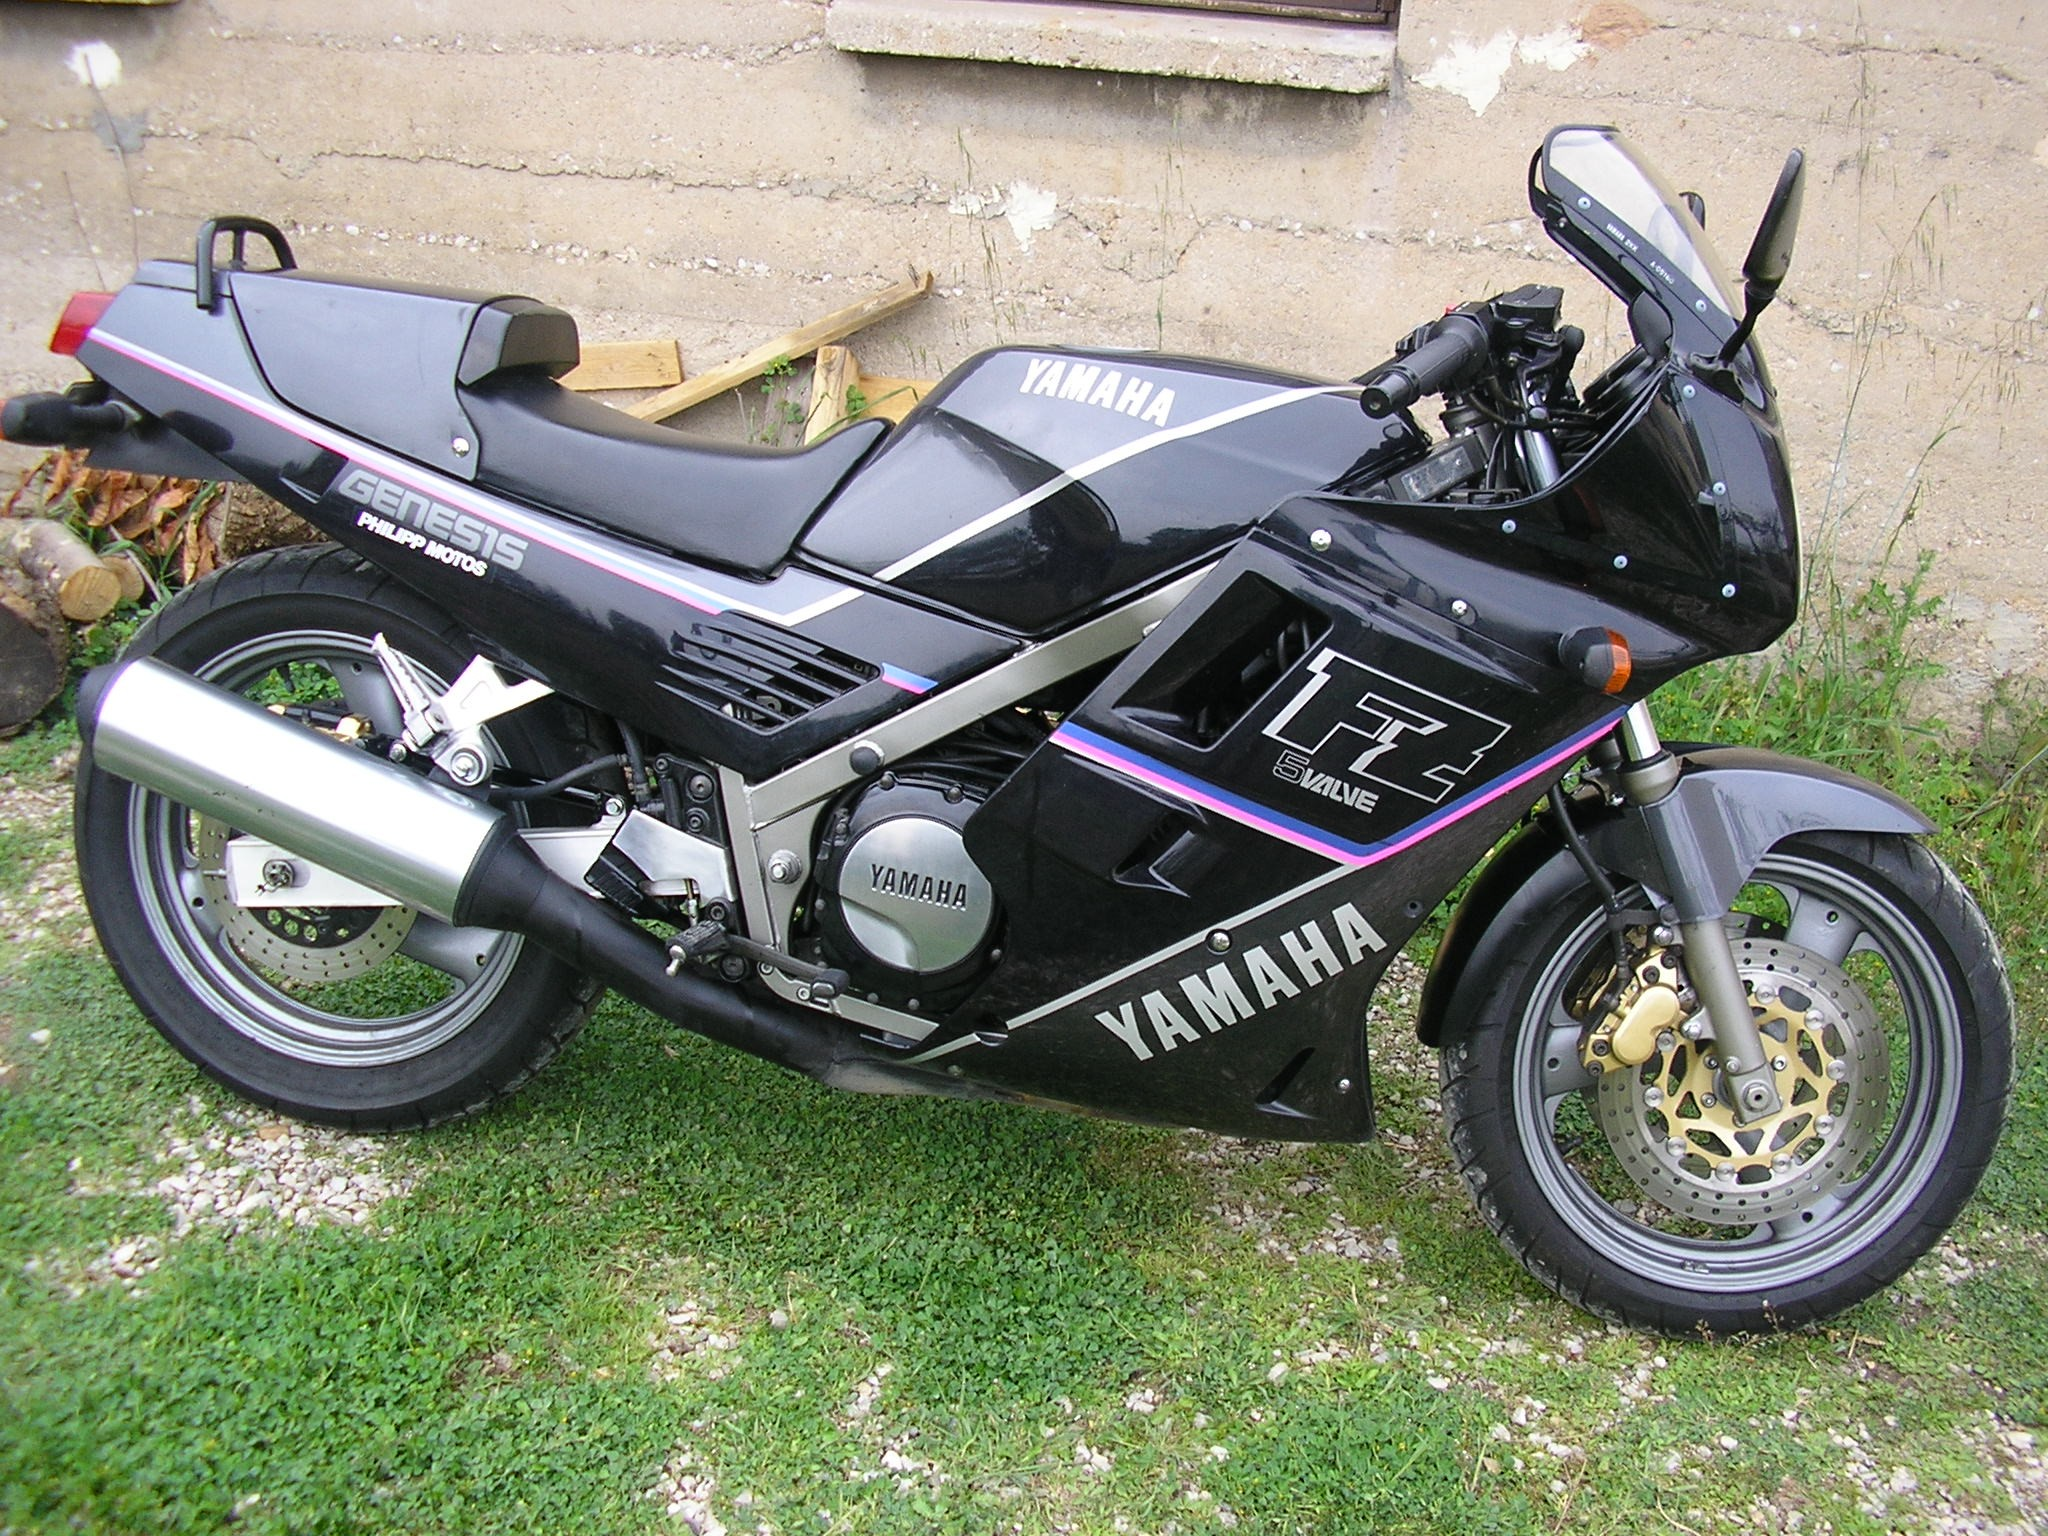 Yamaha Fz 750 Genesis Pics Specs And List Of Seriess By